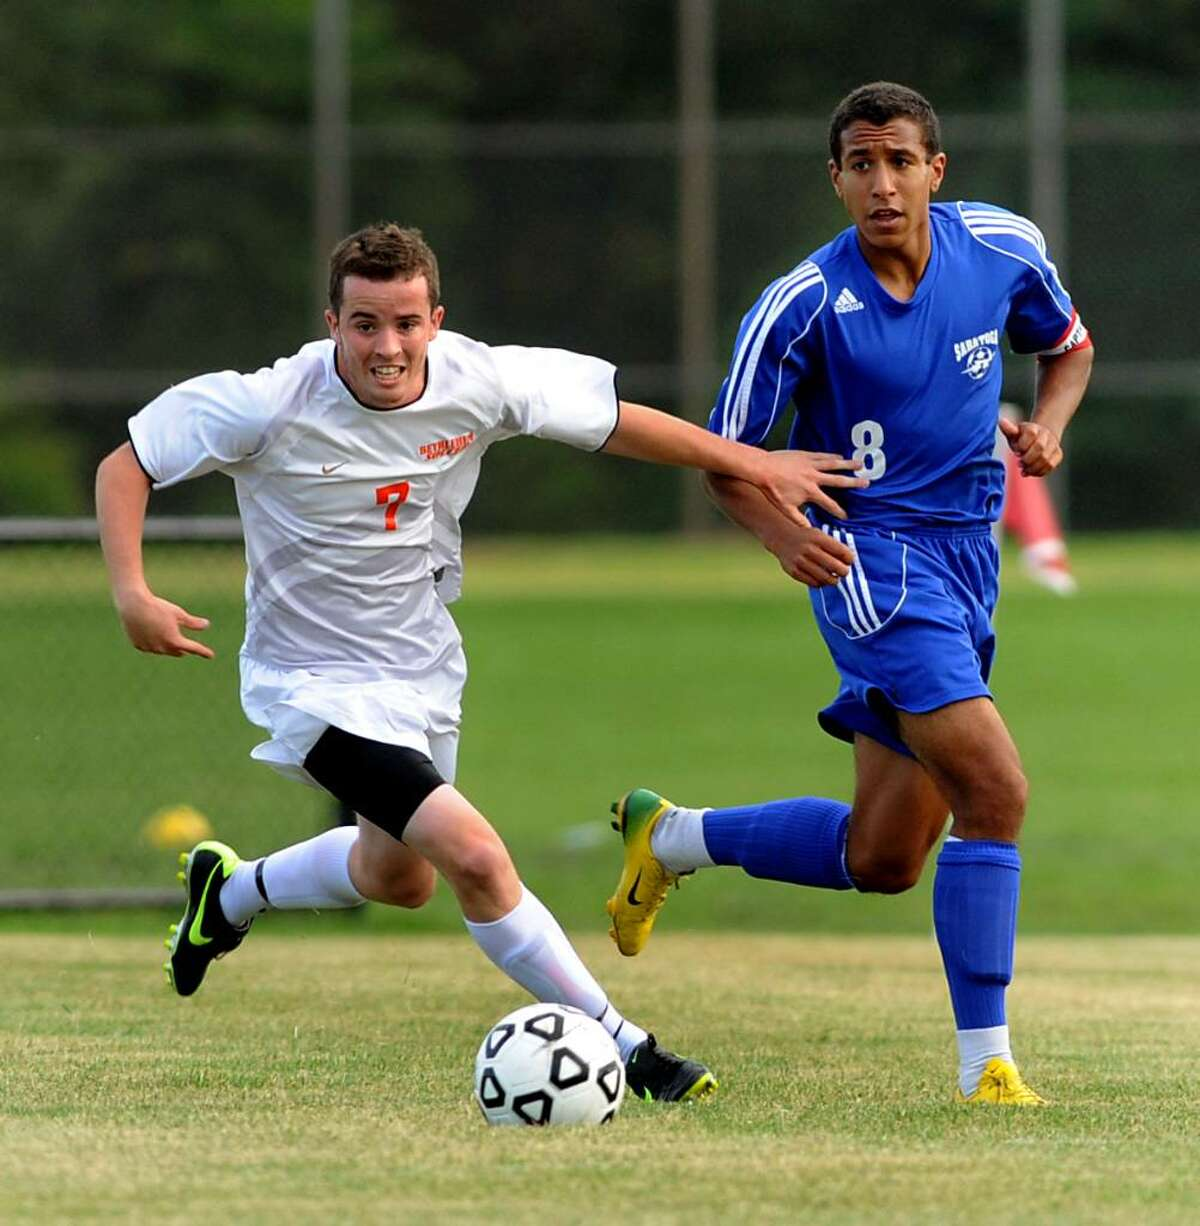 Bethlehem's Mike Mulhass controls the ball as Saratoga Springs' Noah Cadet, right, defends during their soccer game on Thursday, Sept. 17, 2009, at Bethlehem High in Bethlehem, N.Y. High School Sports (Cindy Schultz / Times Union)